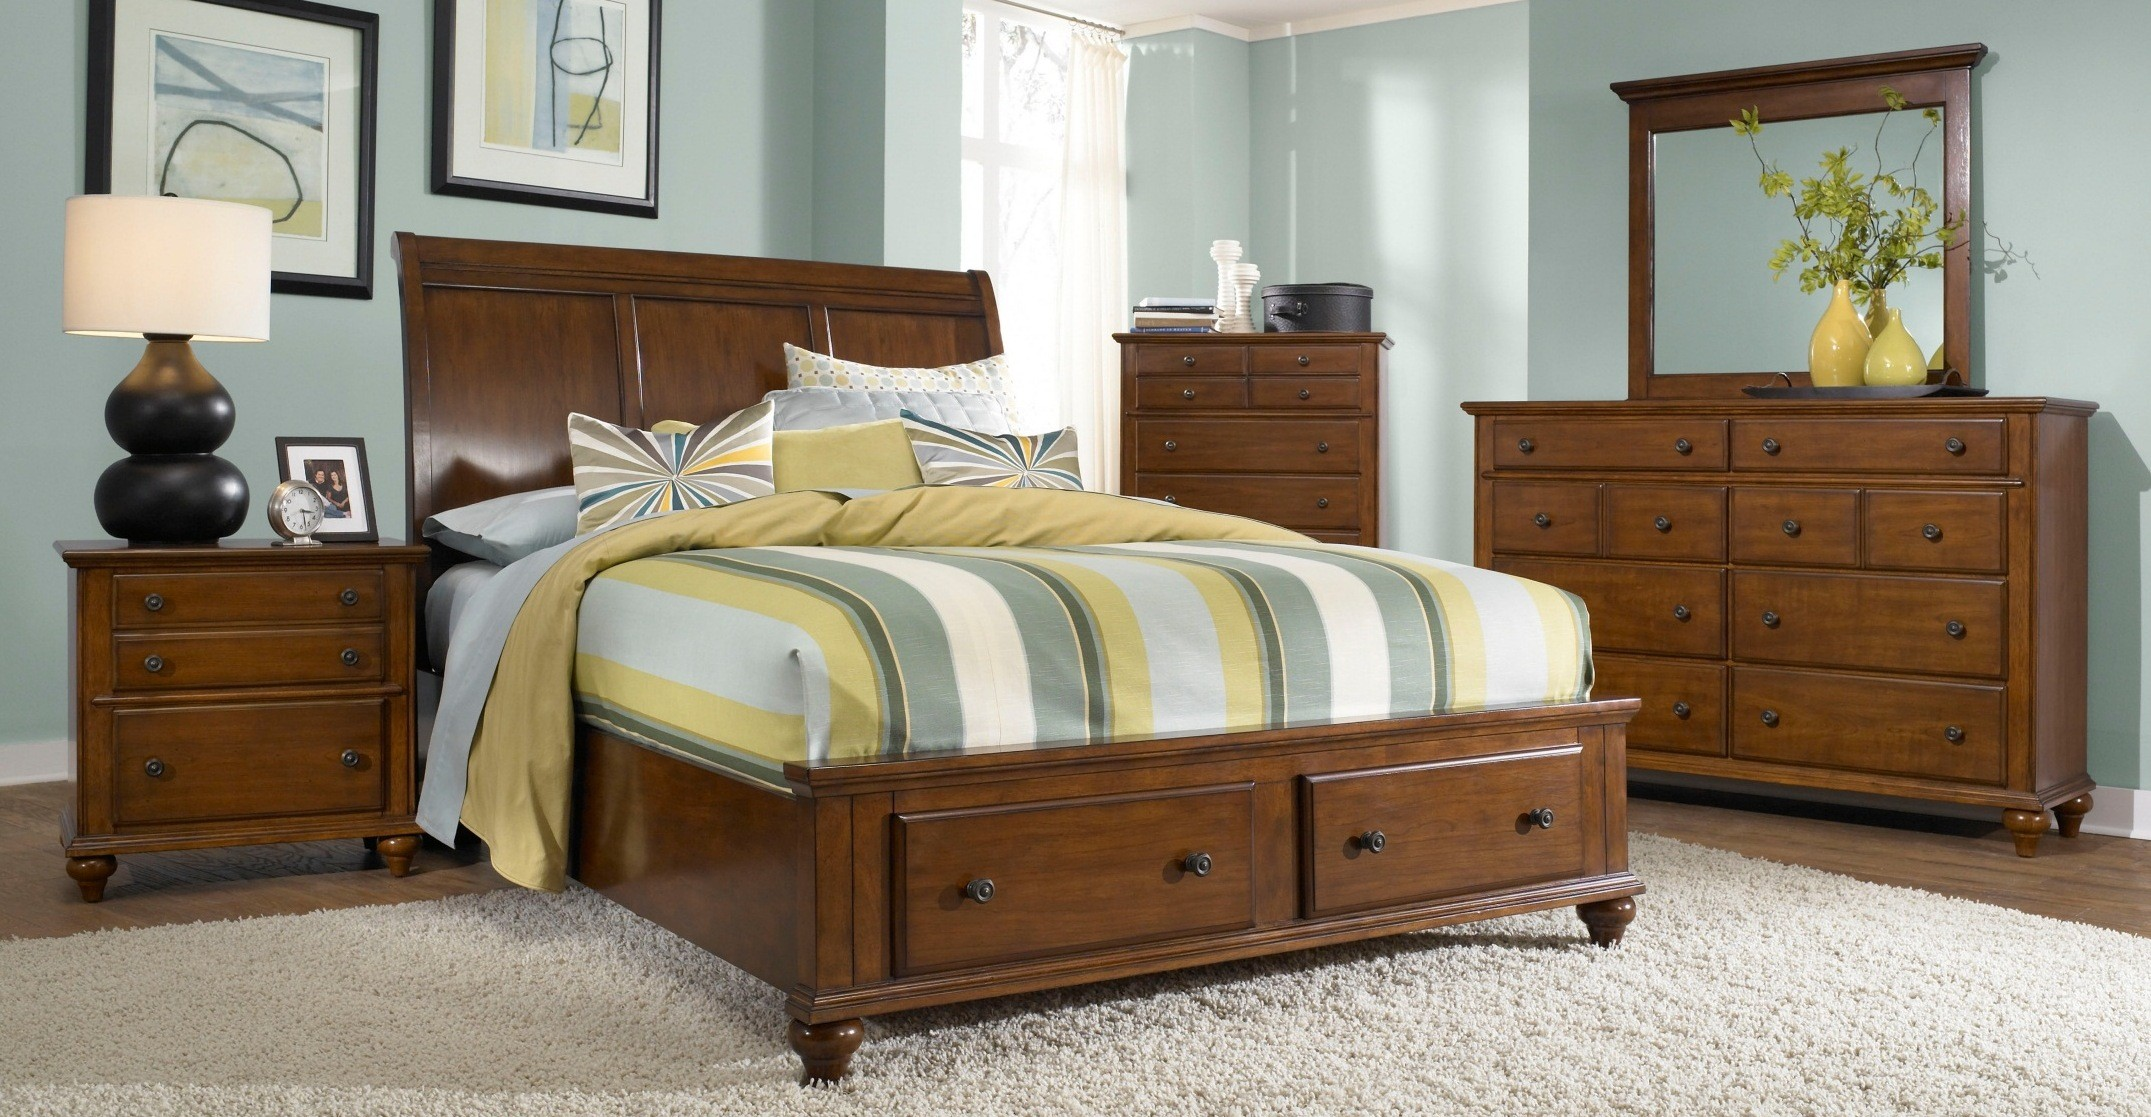 Hayden Place Light Cherry Sleigh Storage Bedroom Set From Broyhill 4648 274 277 470 Coleman